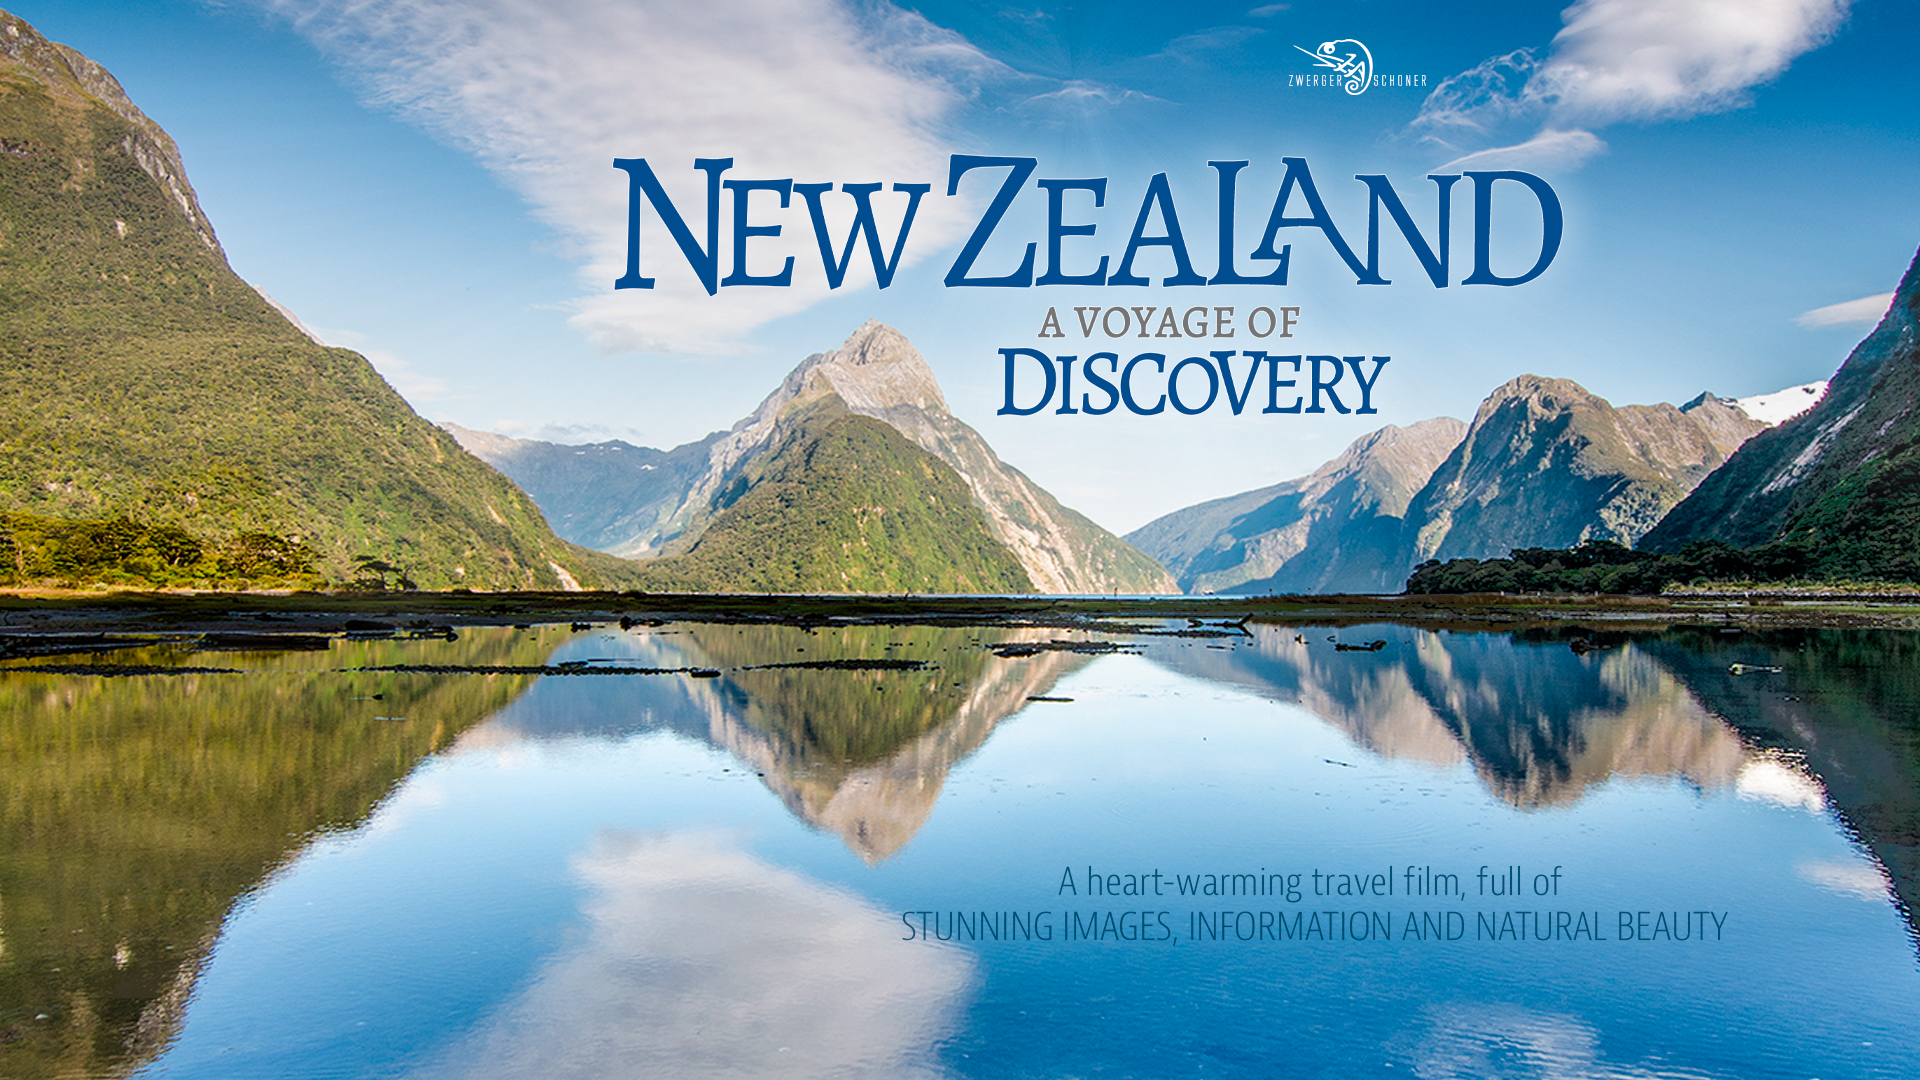 New Zealand - A Voyage of Discovery